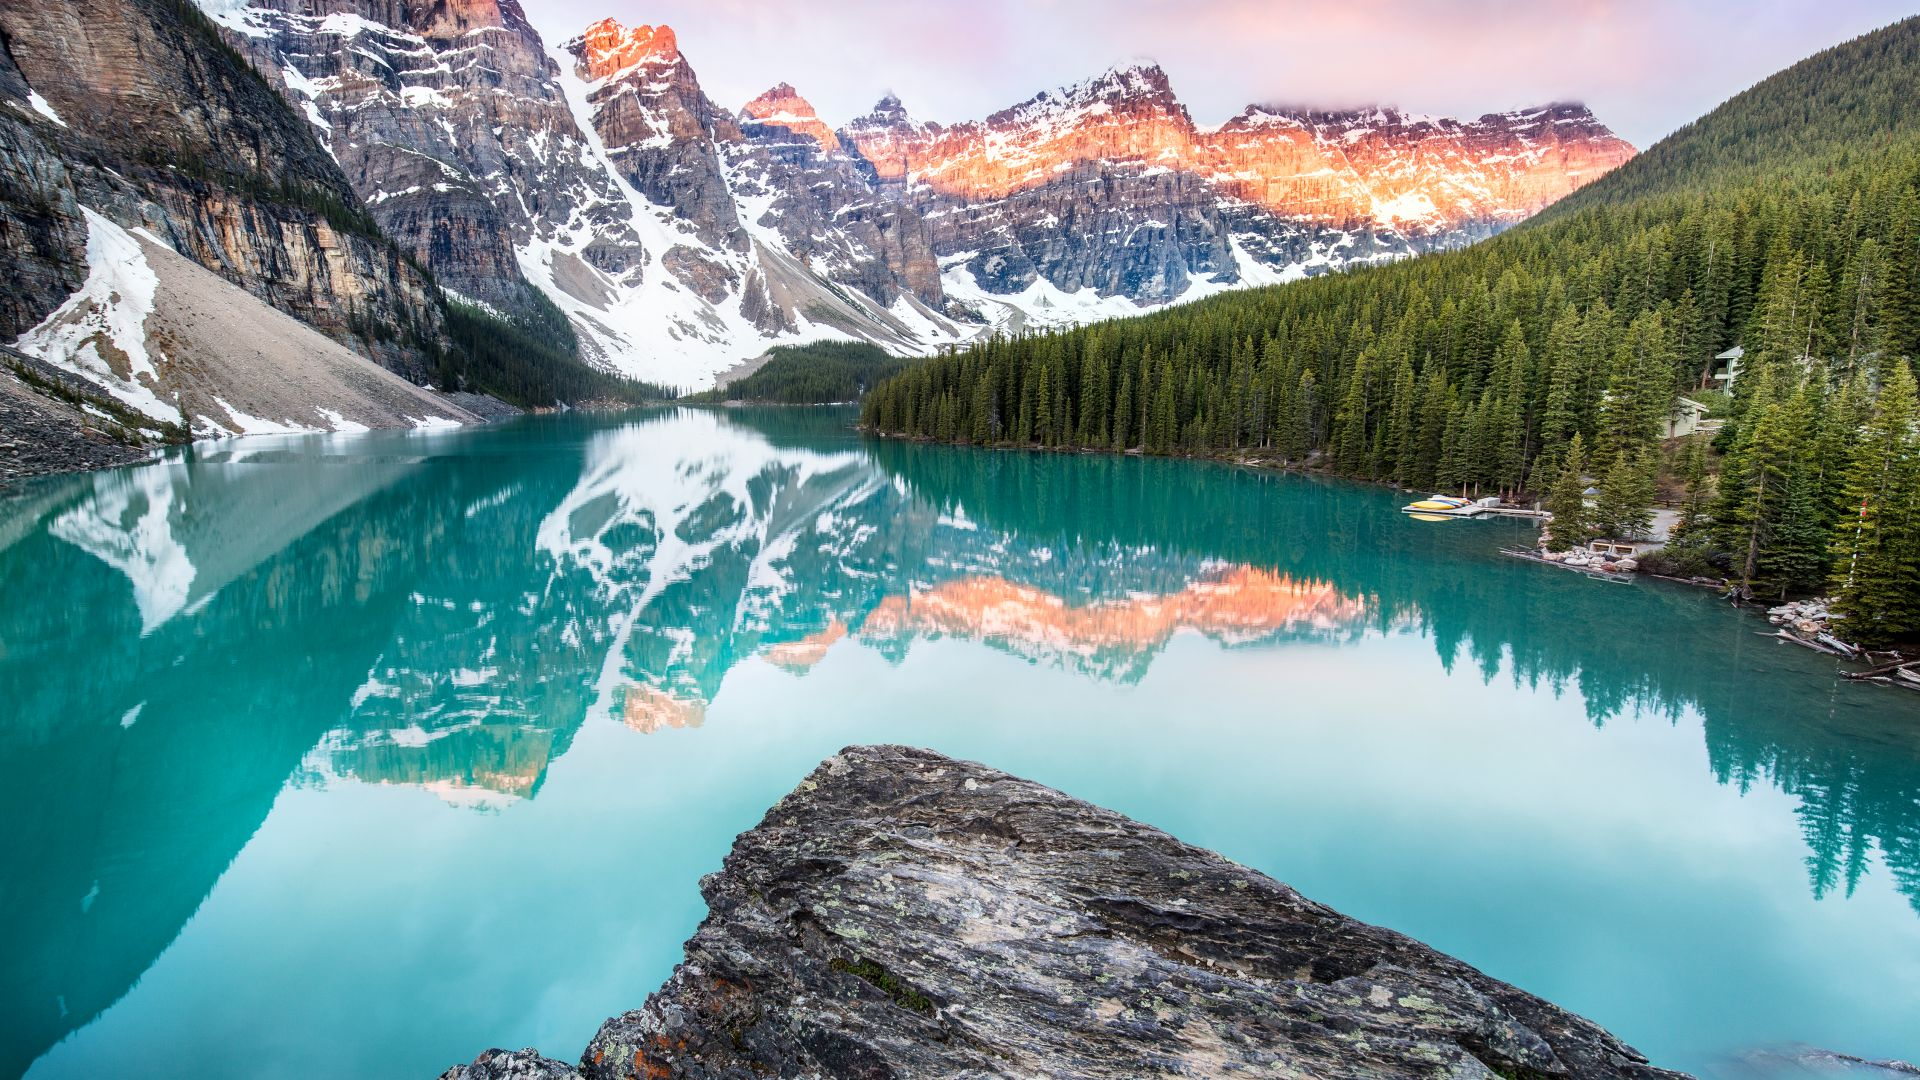 Moraine Lake, Banff, Canada, mountains, forest, 4k (horizontal)